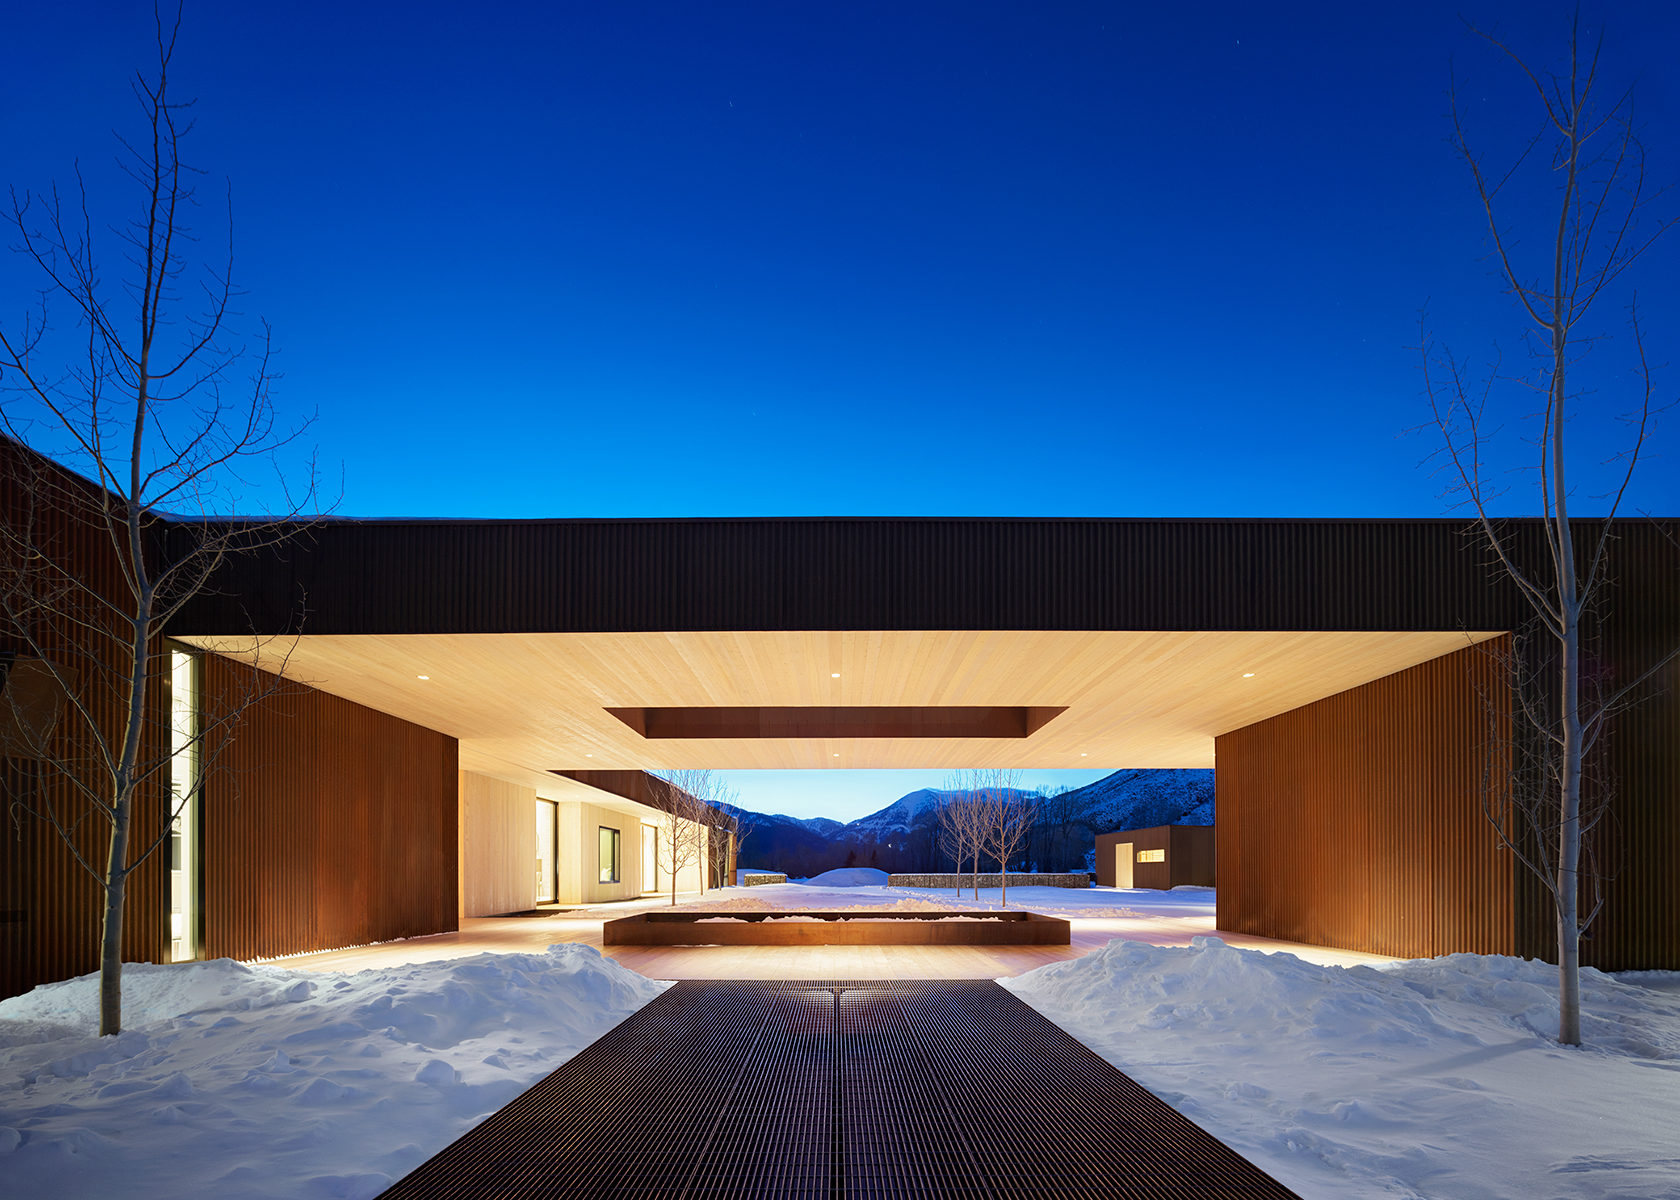 Dogtrot Clb Architects